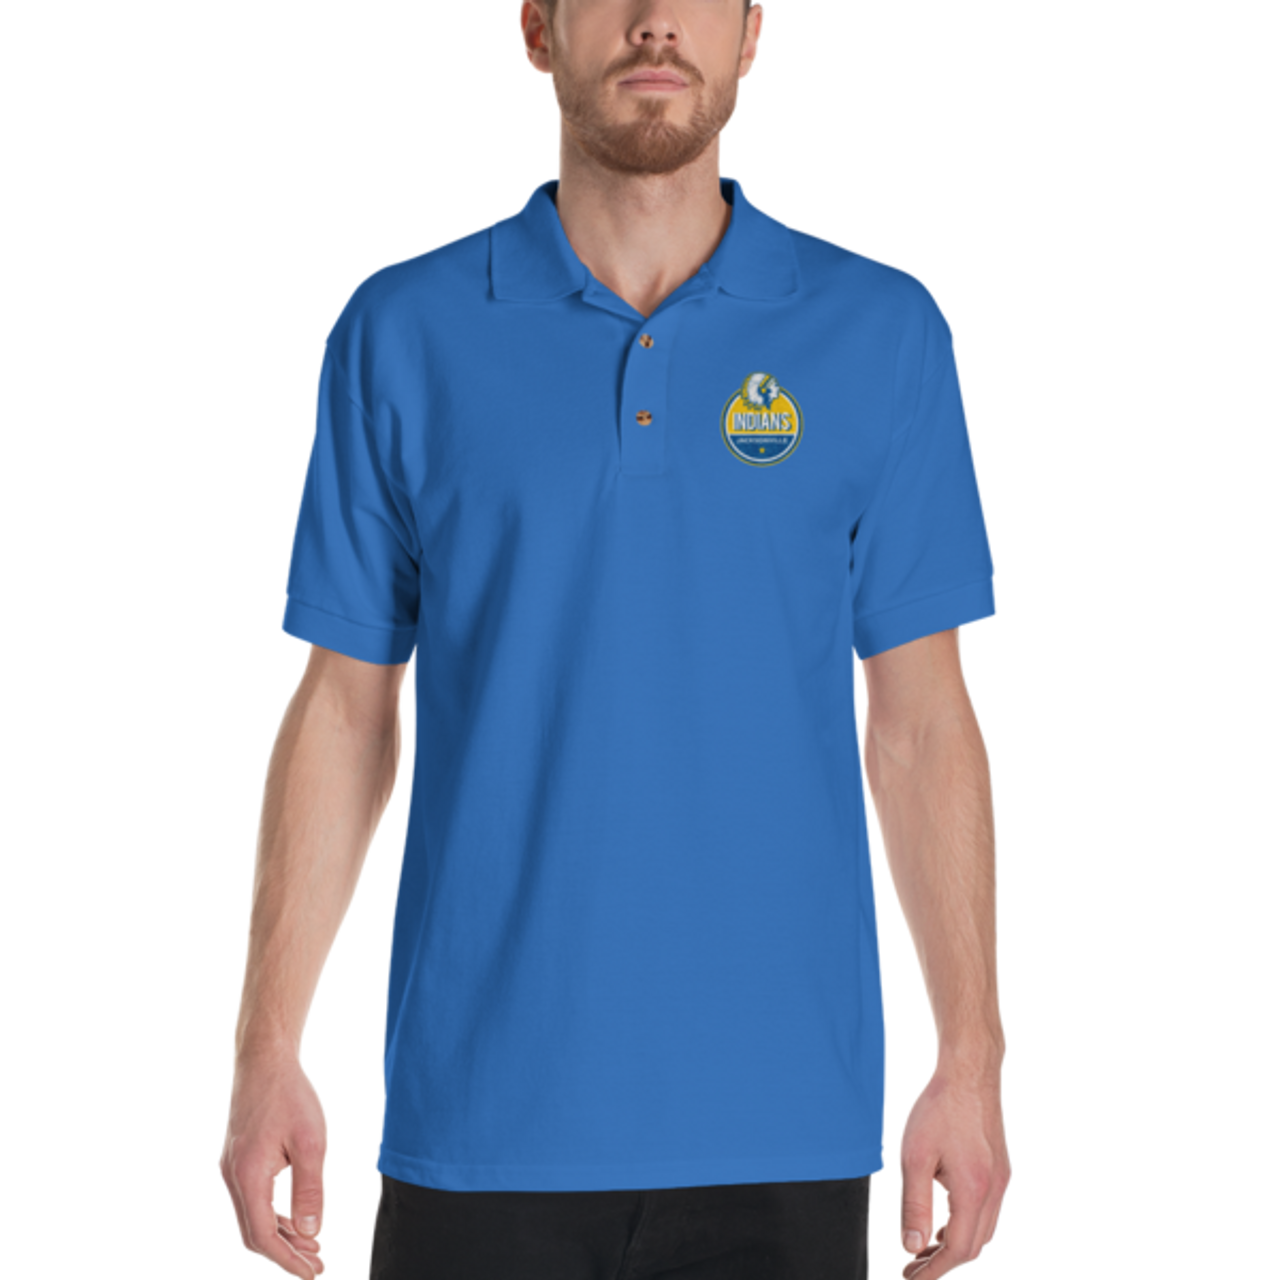 Jacksonville Indian Badge Embroidered Polo Shirt